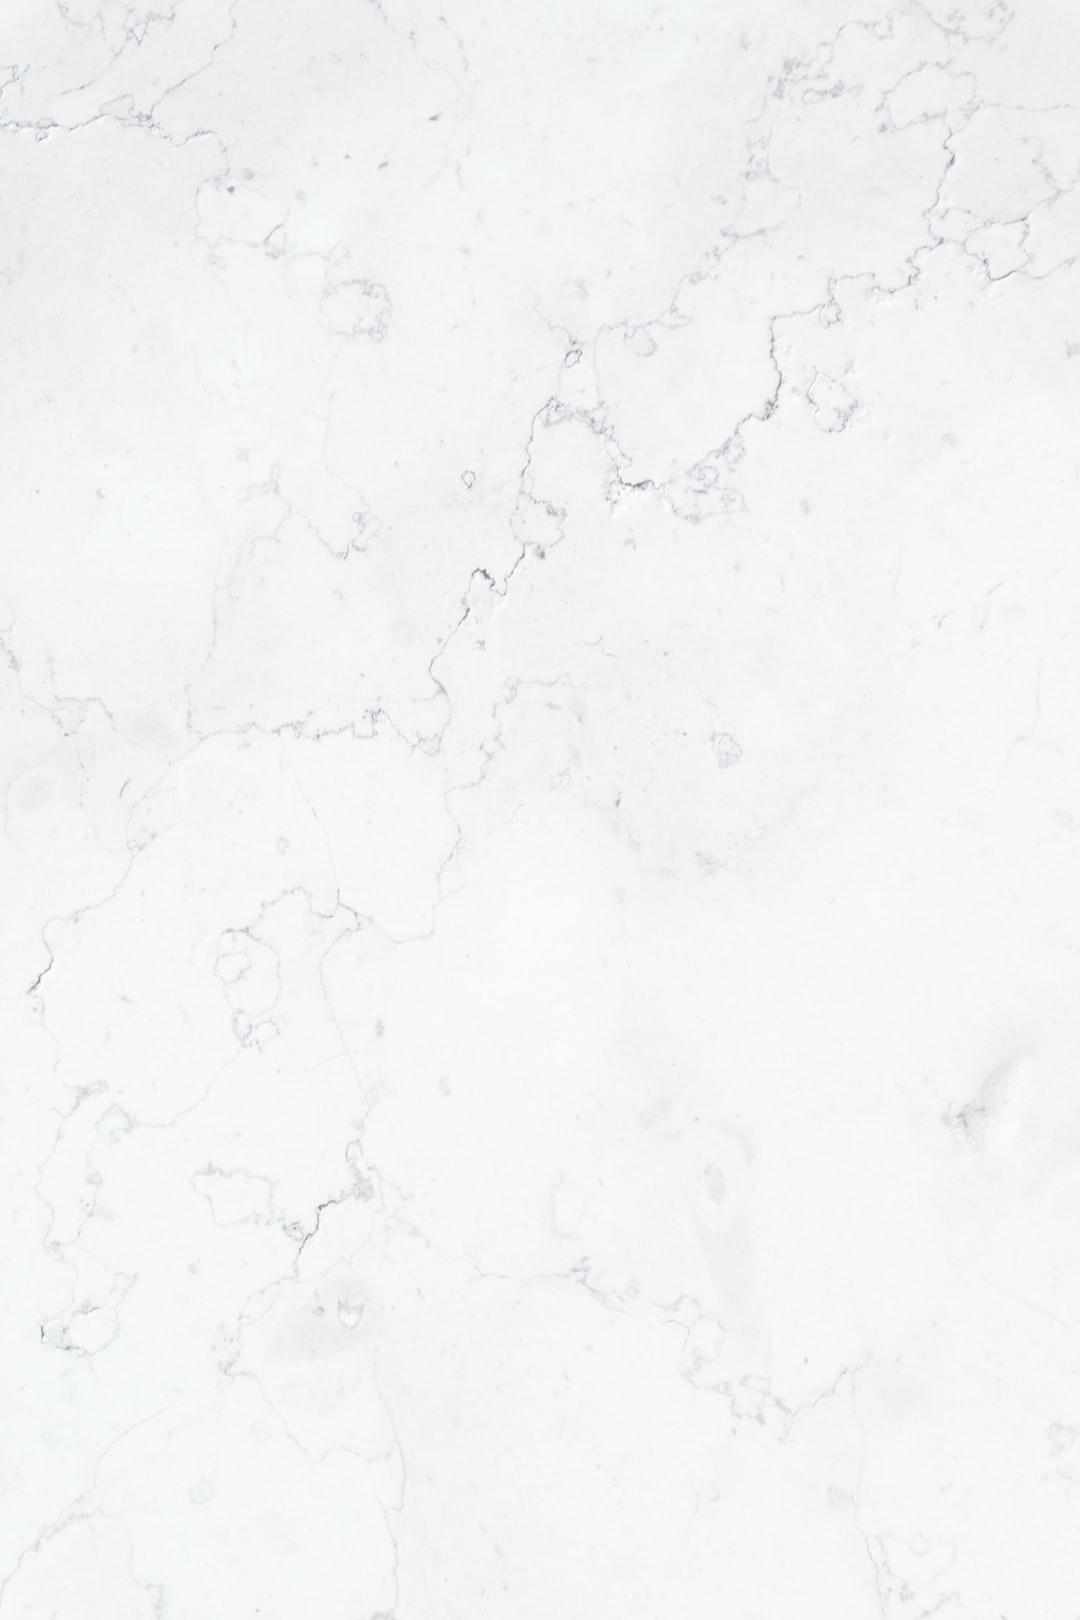 100 Marble Texture Pictures Hq Download Free Images